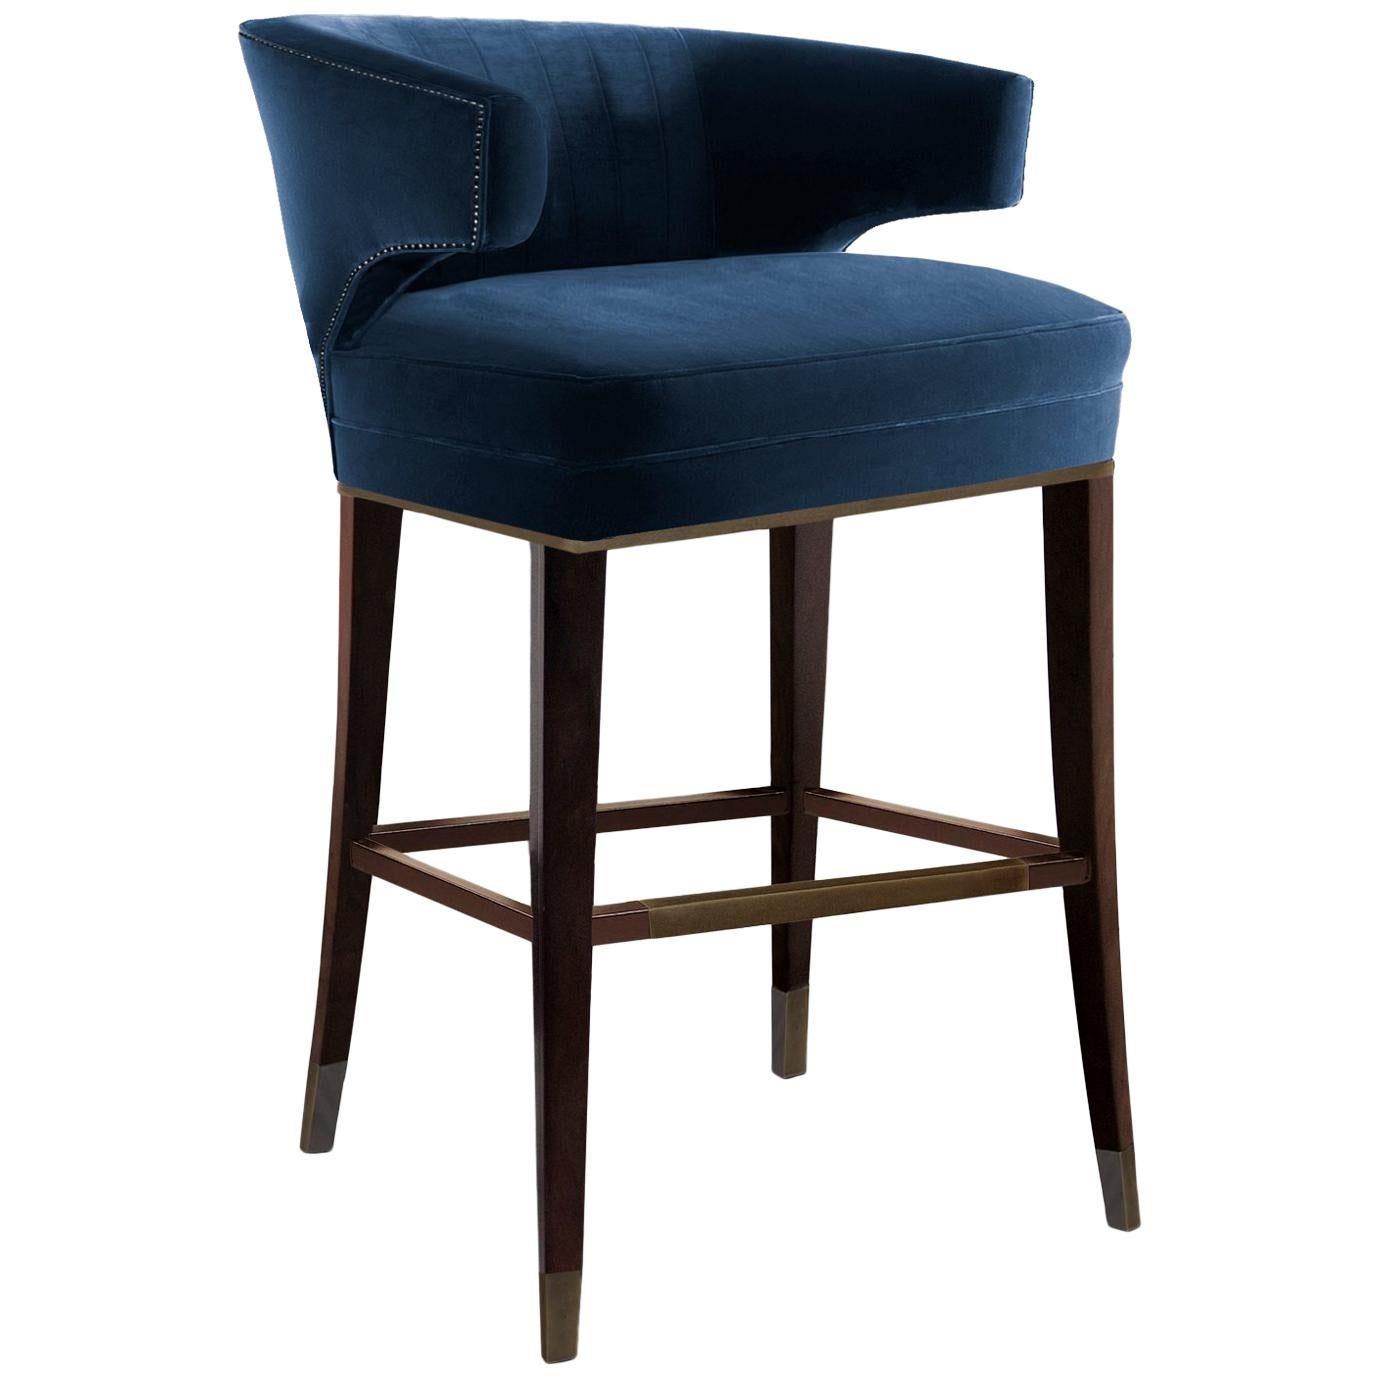 Ibis Counter Stool in Velvet with Brass Details